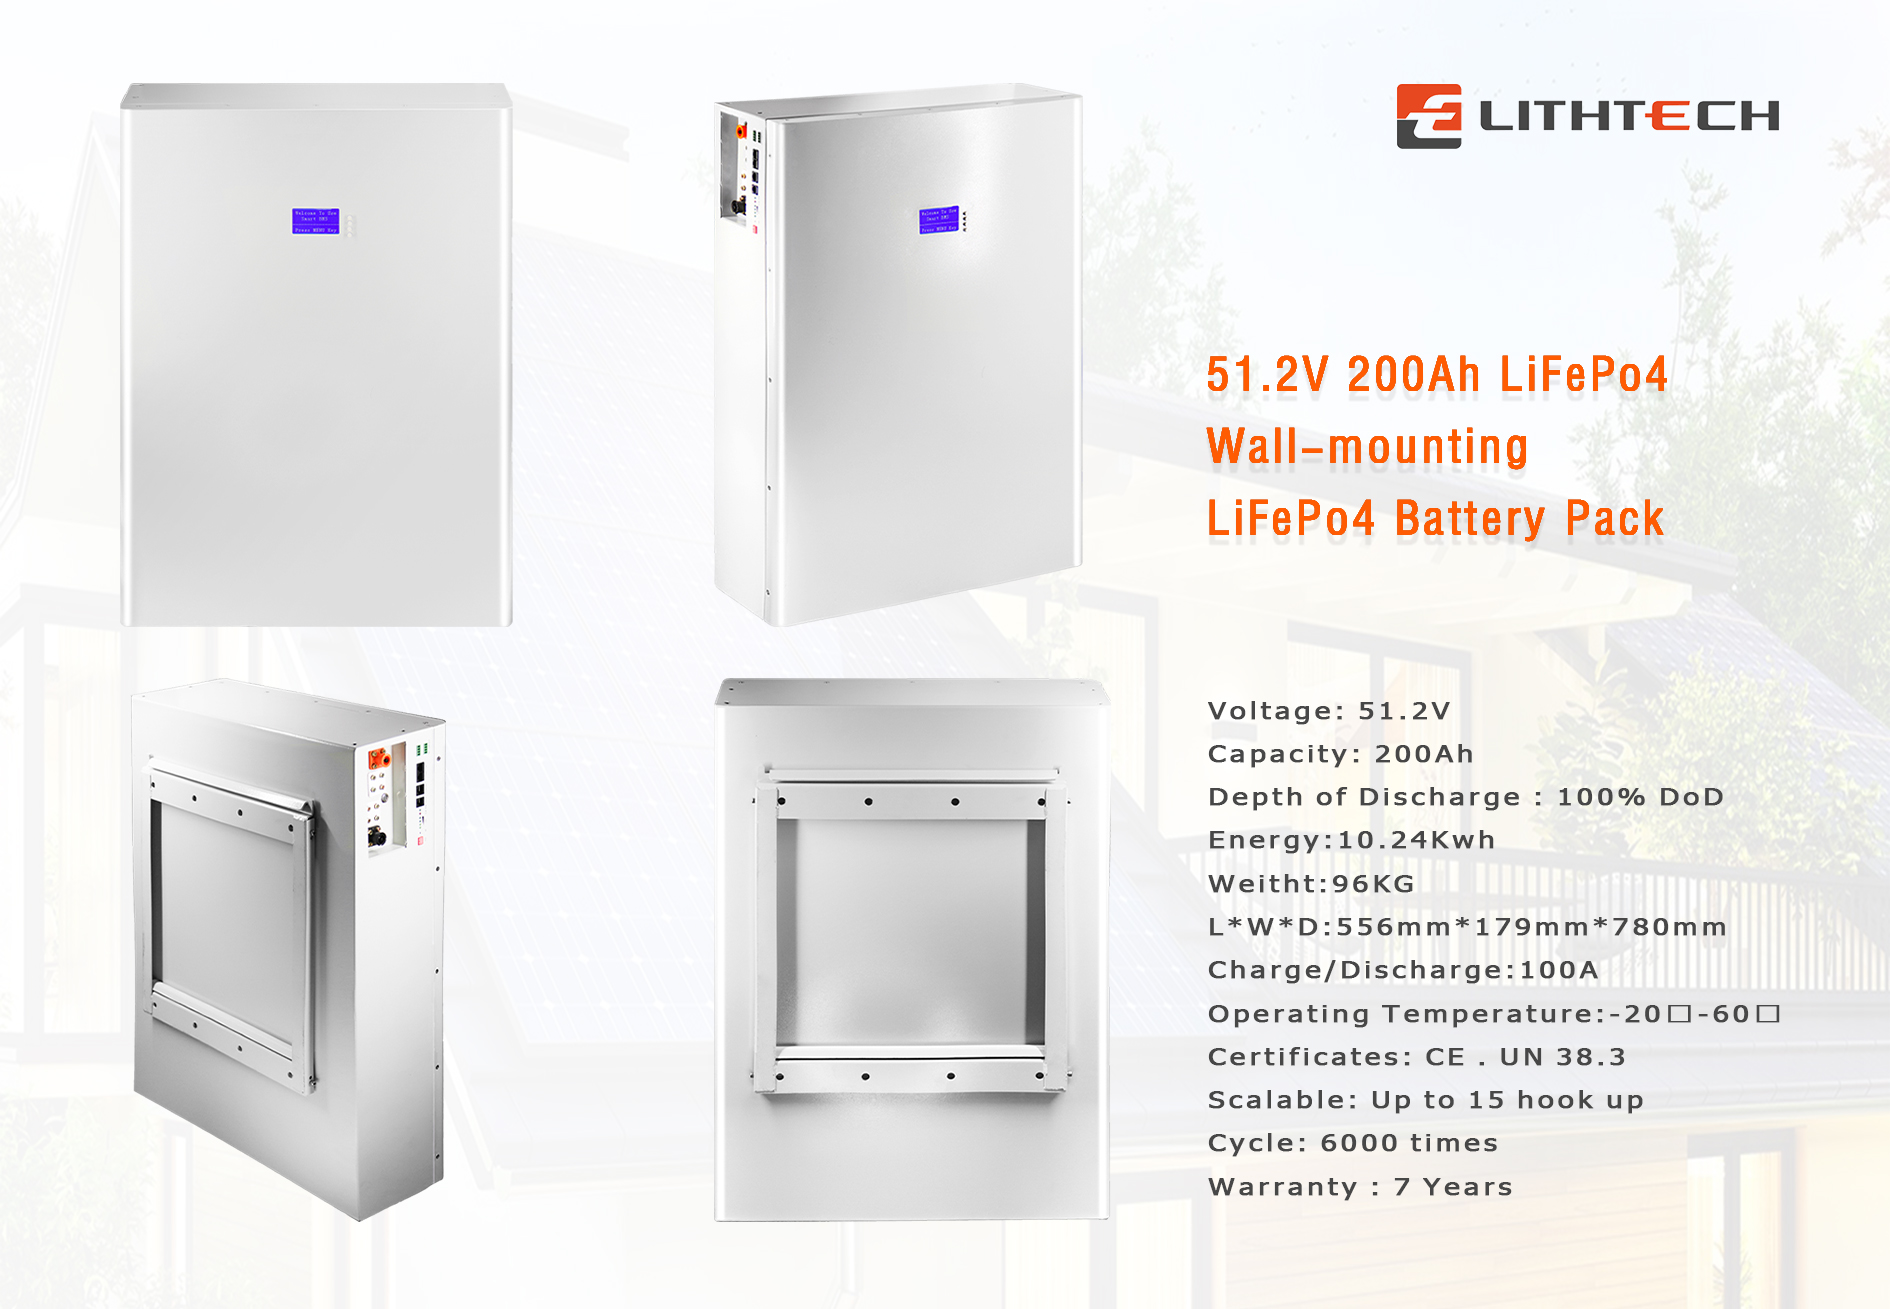 Lithtech Powerwall Home Battery LiFePO4 Battery 51.2V 200AH